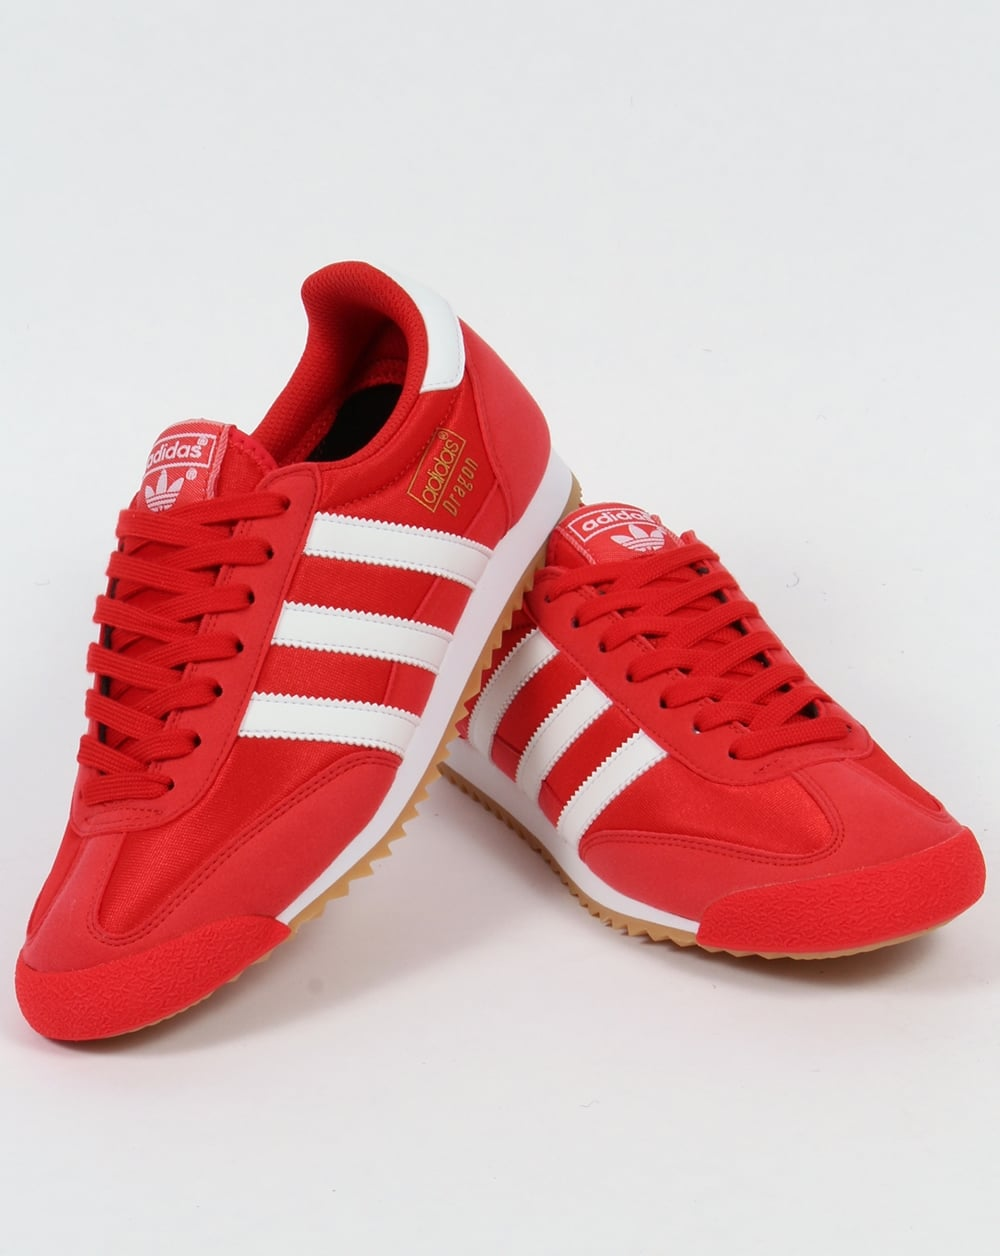 adidas dragon trainers blue and red